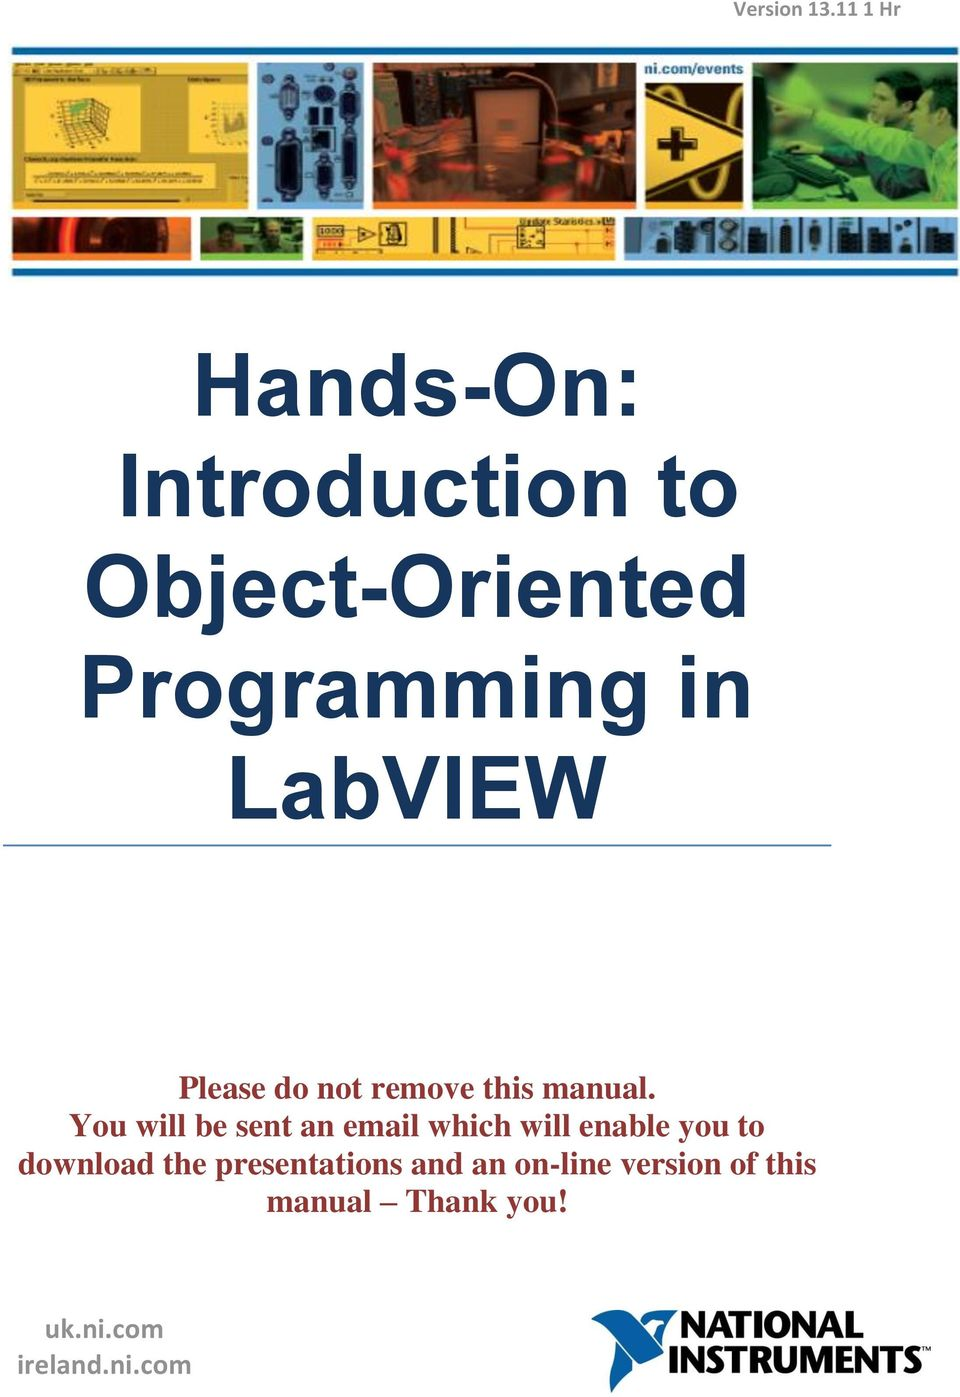 LabVIEW Please do not remove this manual.